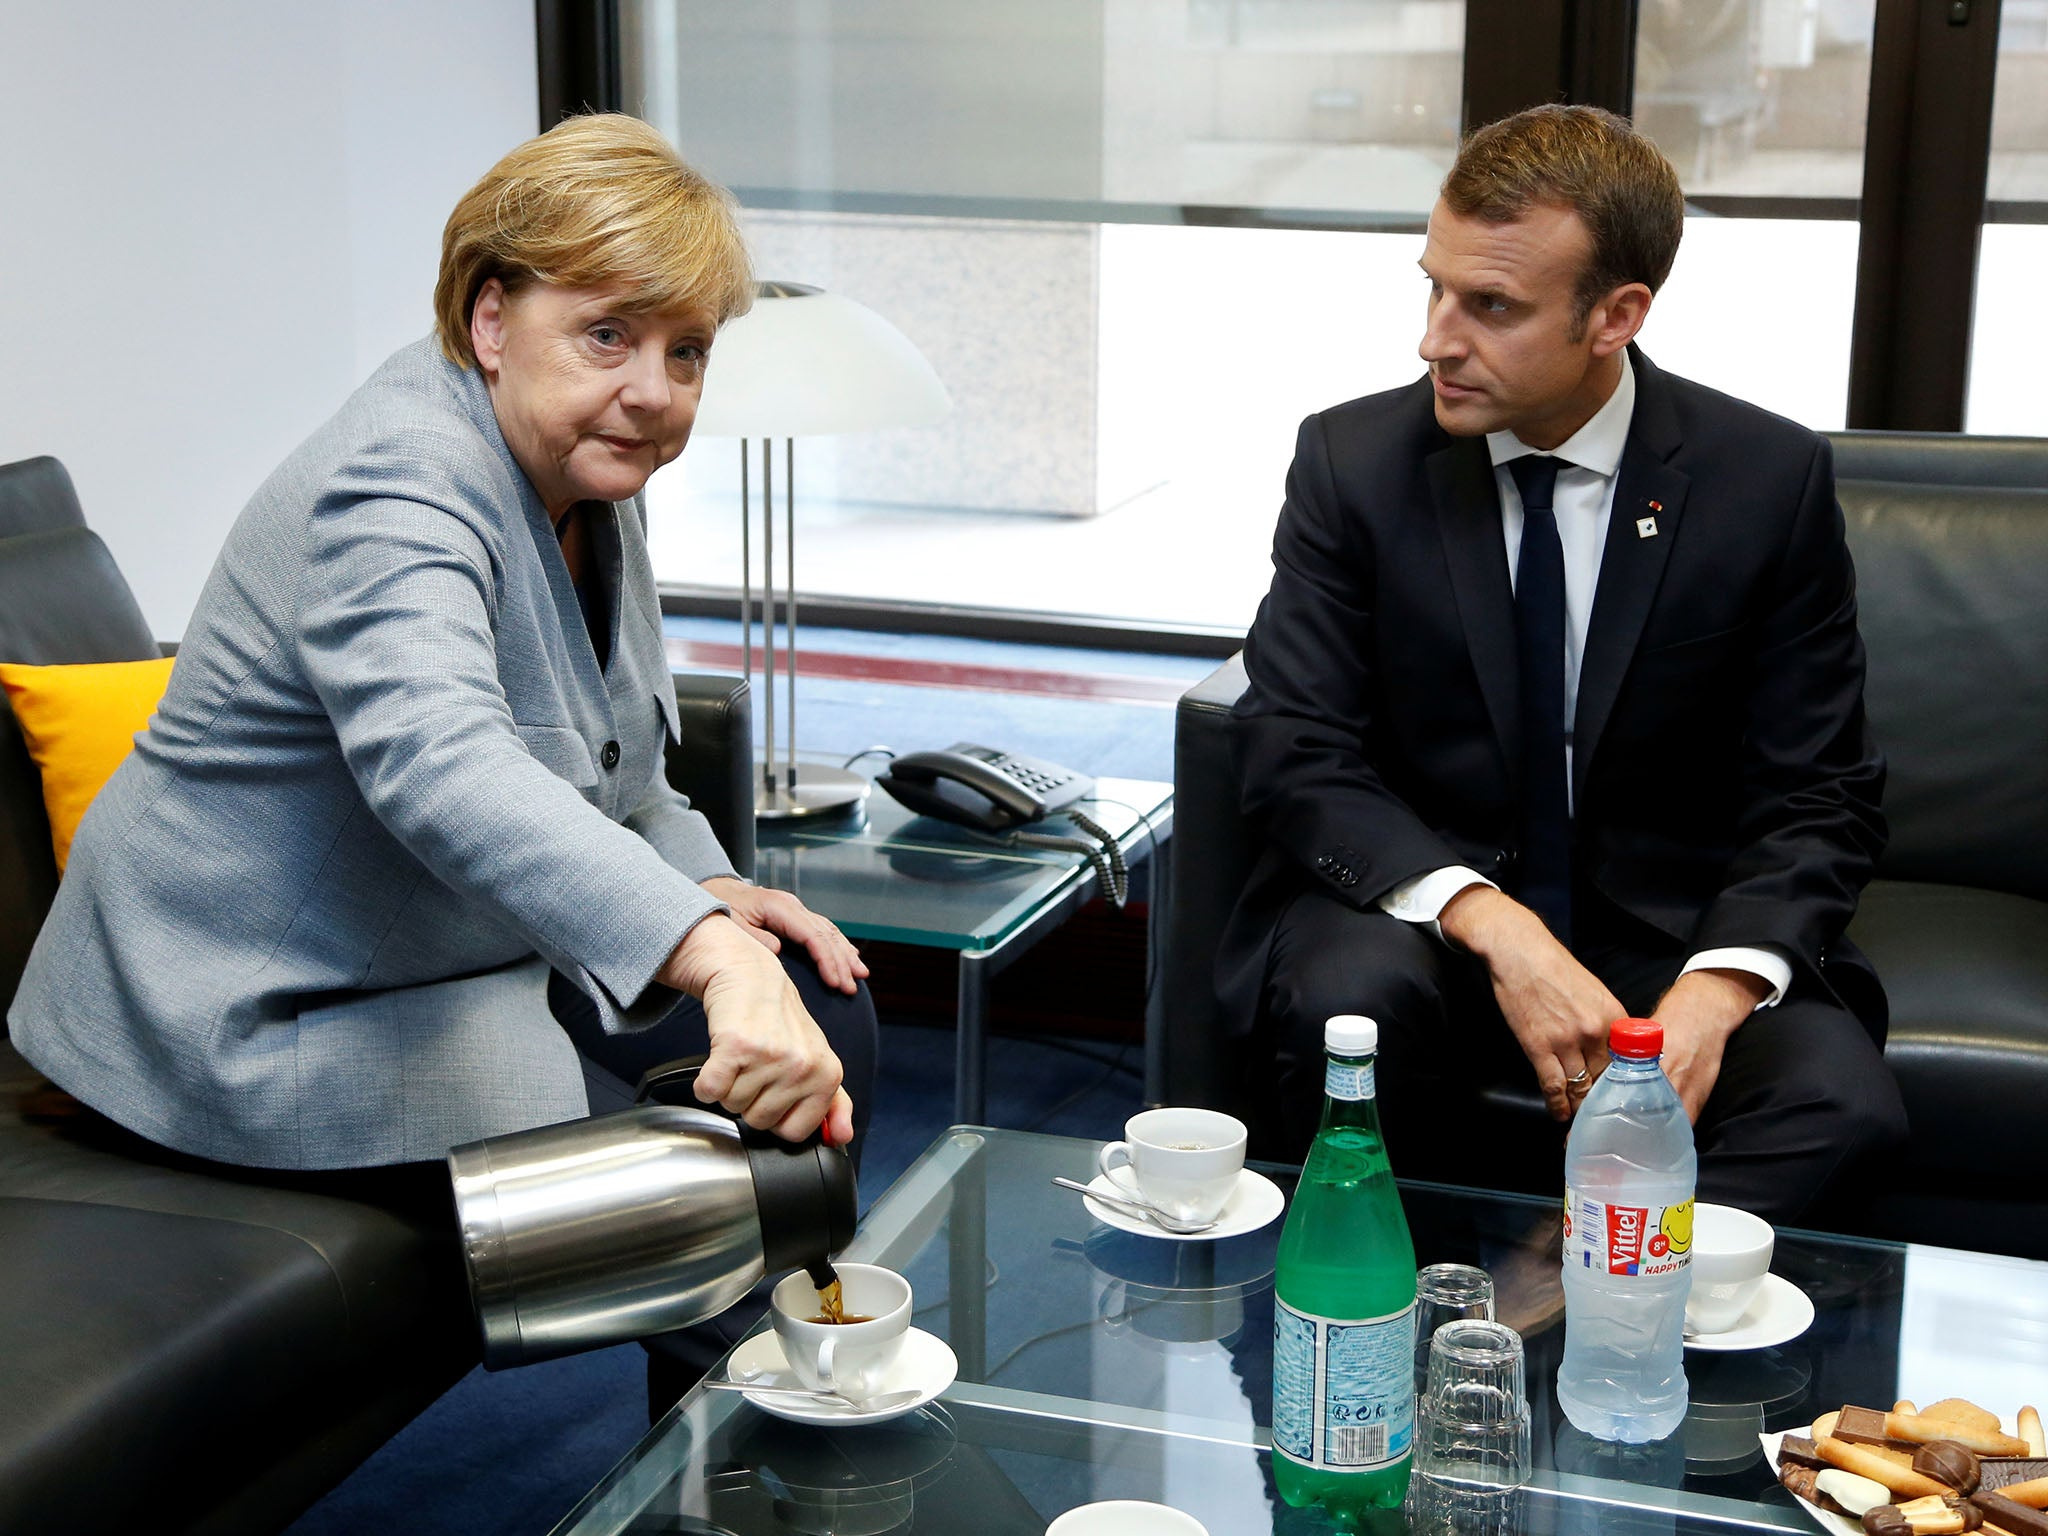 Emmanuel Macron has emerged as de facto head of the EU – and that's bad news for Brexit Britain